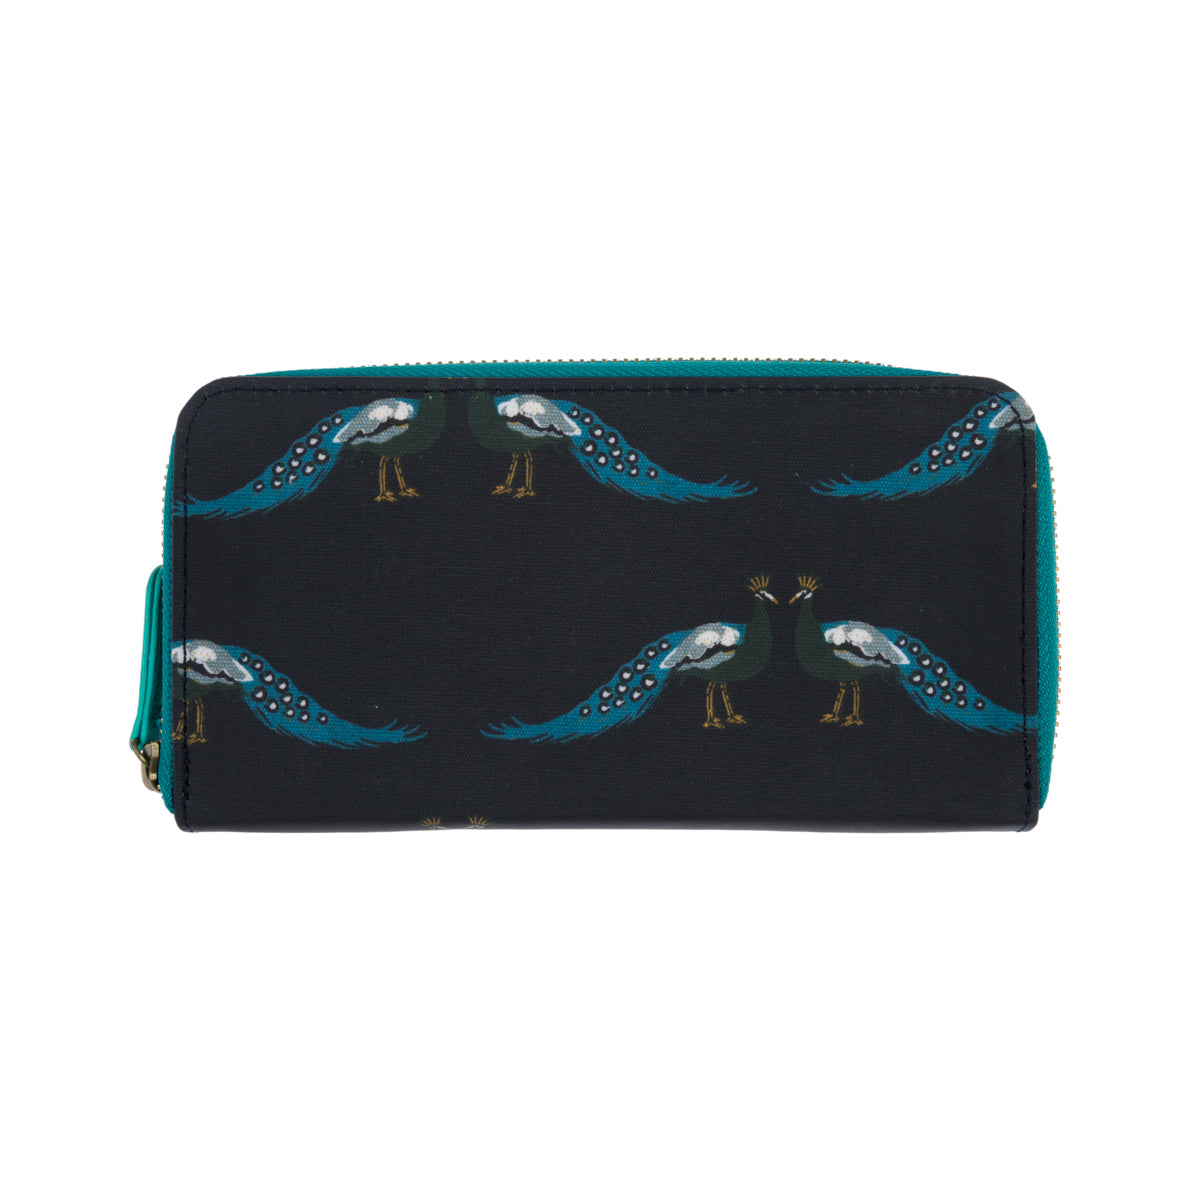 Oilcloth Wallet Purse - Peacocks (metal zip)